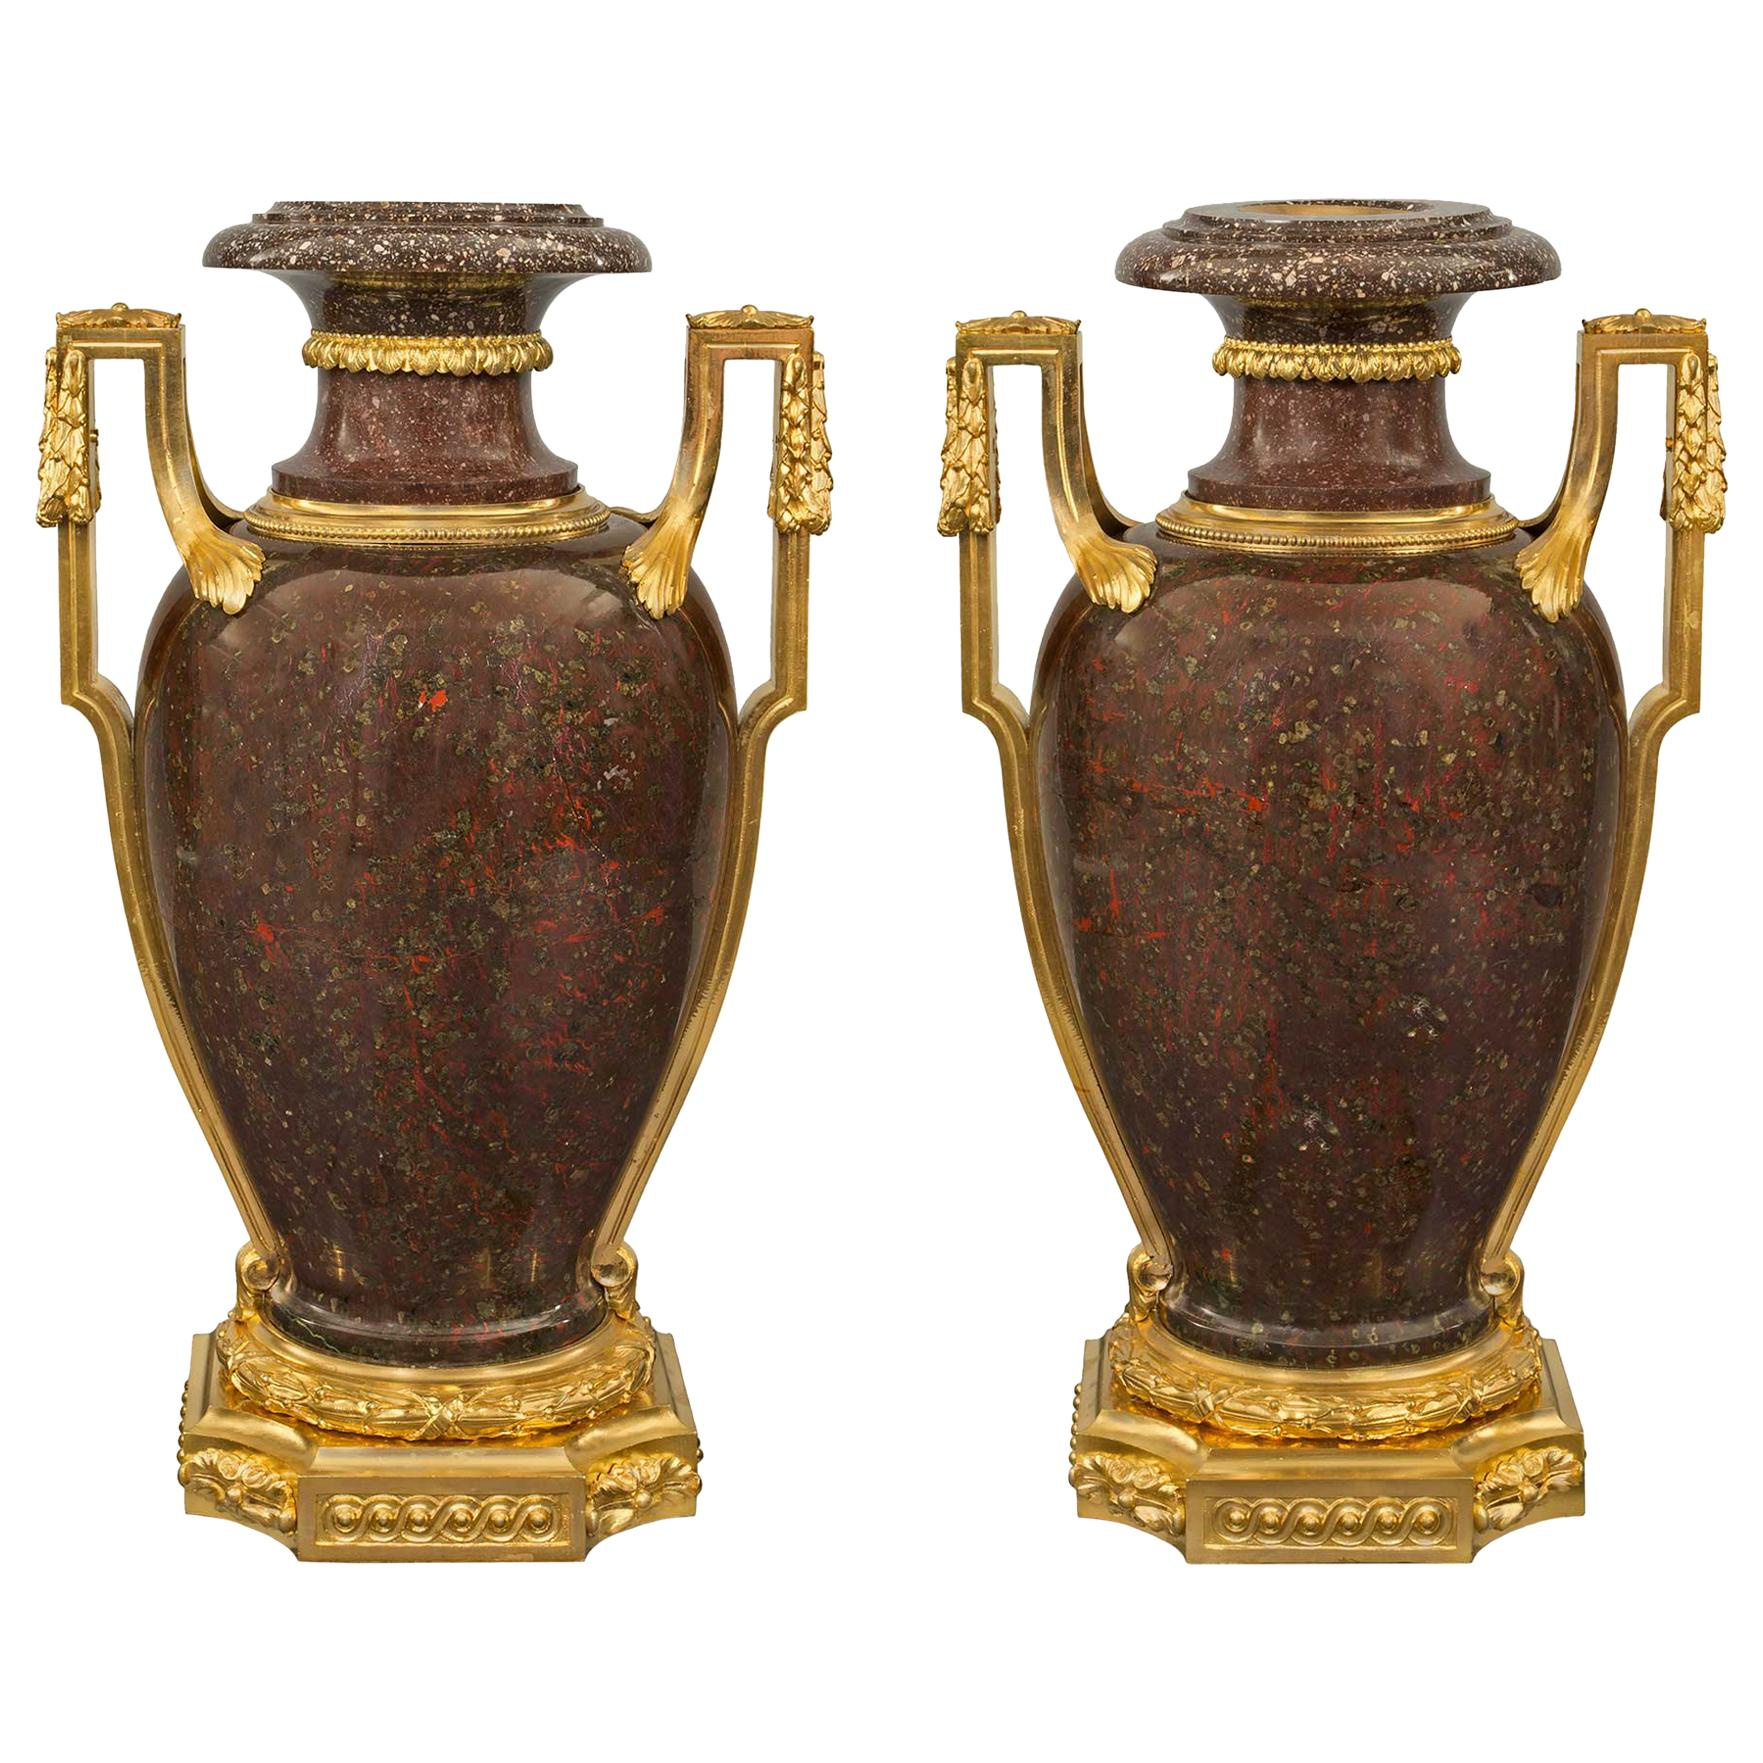 French Early 19th Century Louis XVI Style Porphyry and Ormolu Urns